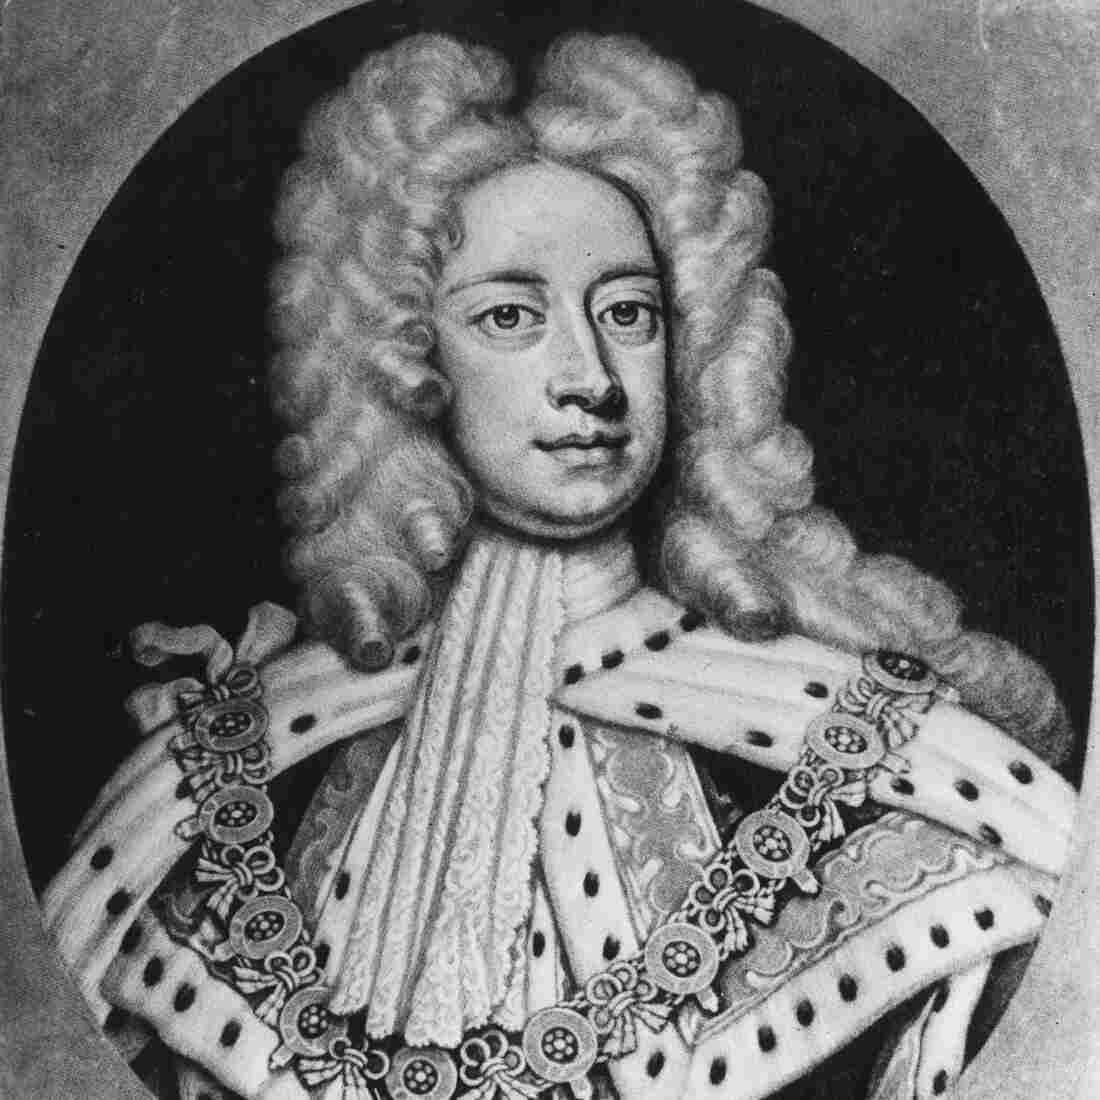 Britain's King George II: Snazzy dresser, adventurous eater.